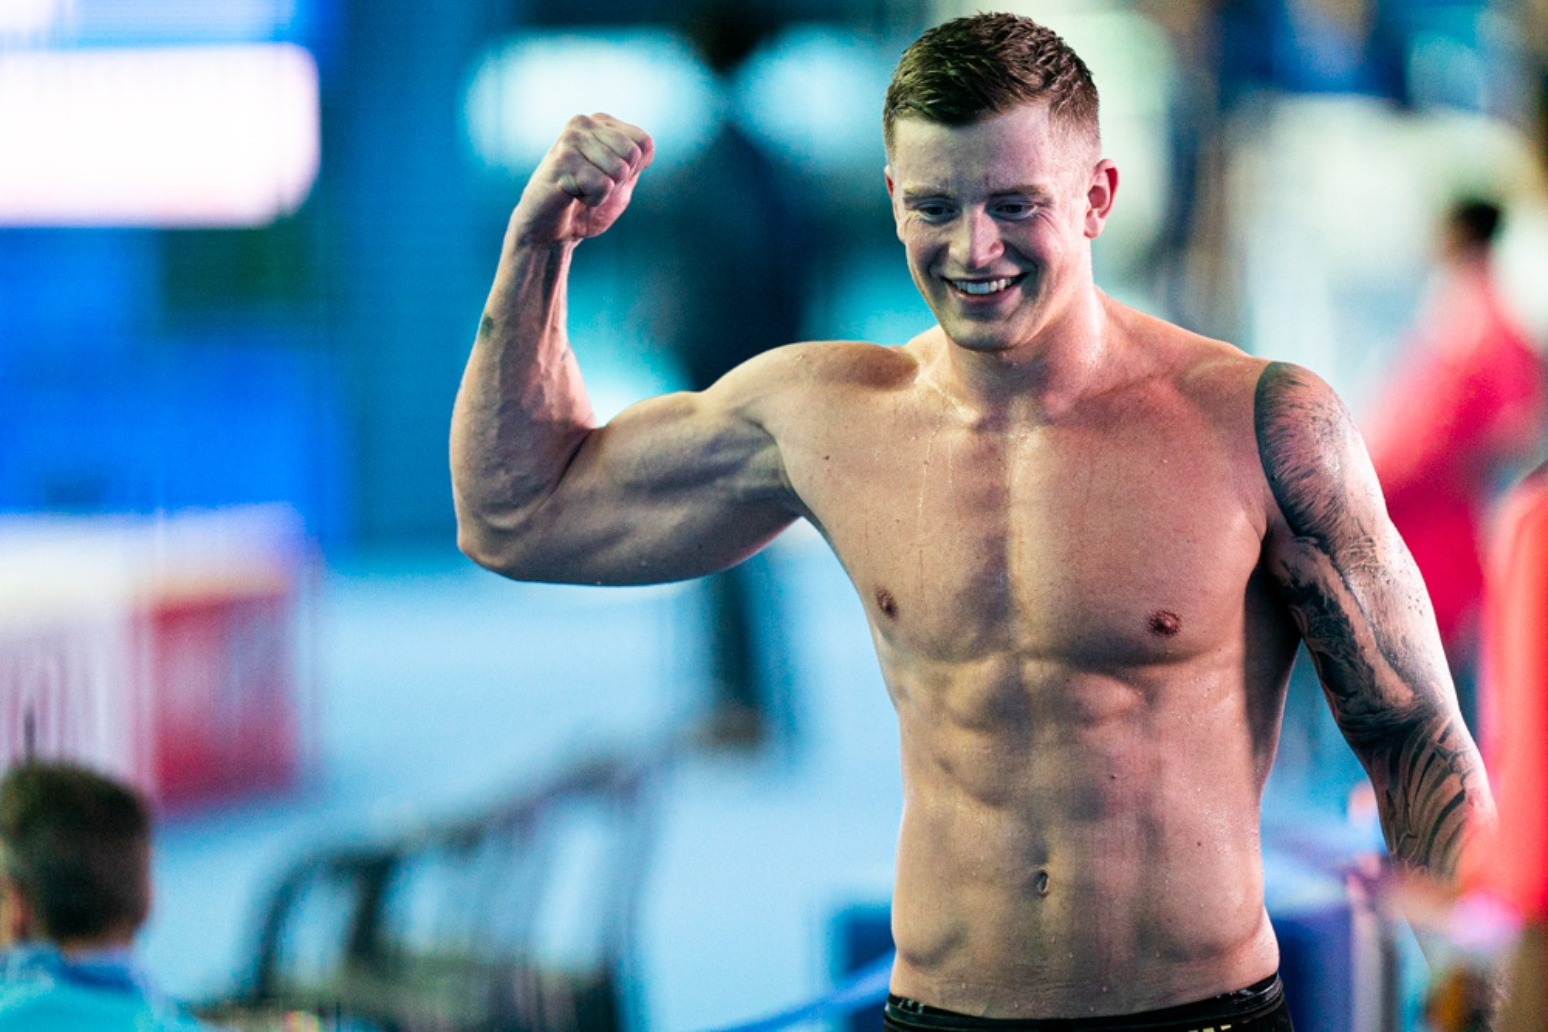 Olympic swimmer Adam Peaty explains why he signed up for Strictly Come Dancing.